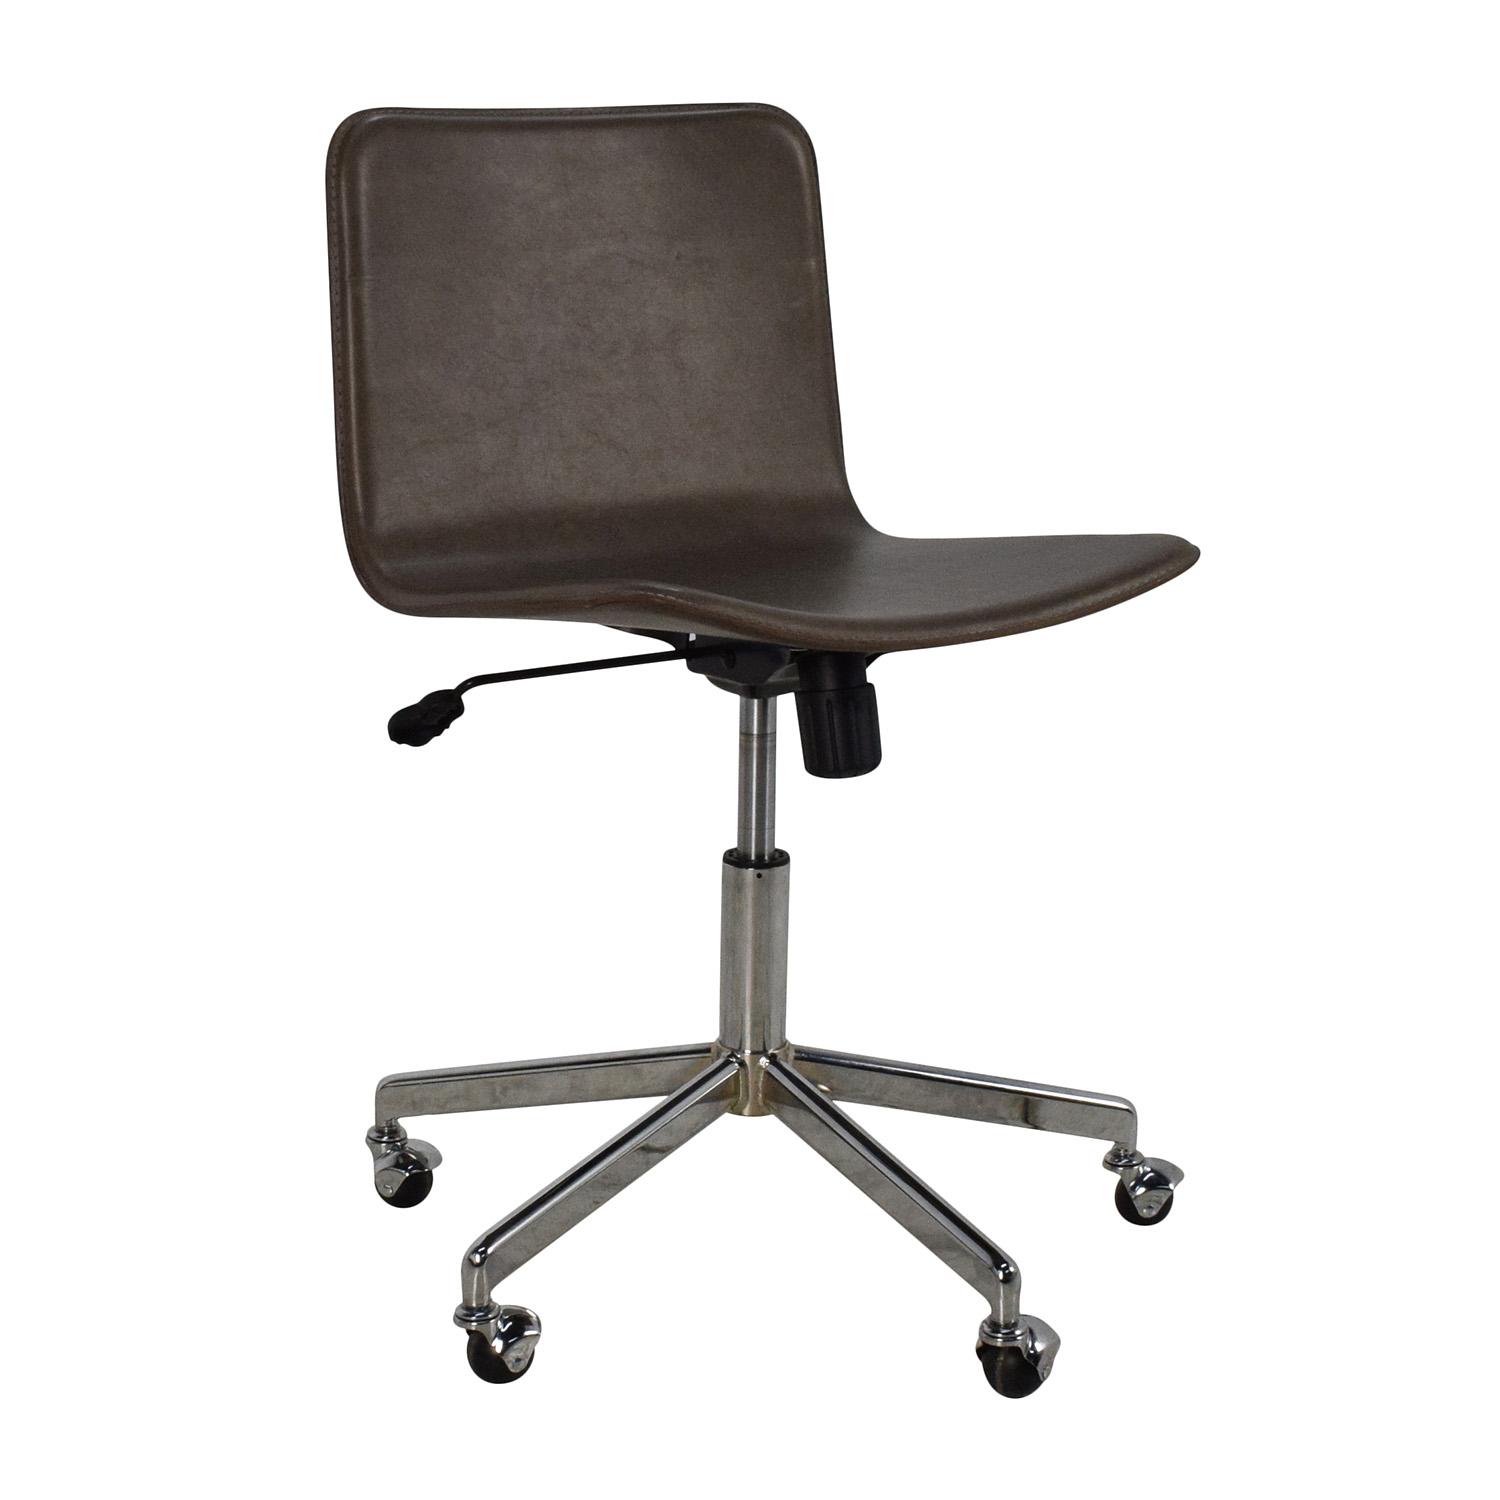 CB2 CB2 Stratum fice Chair used